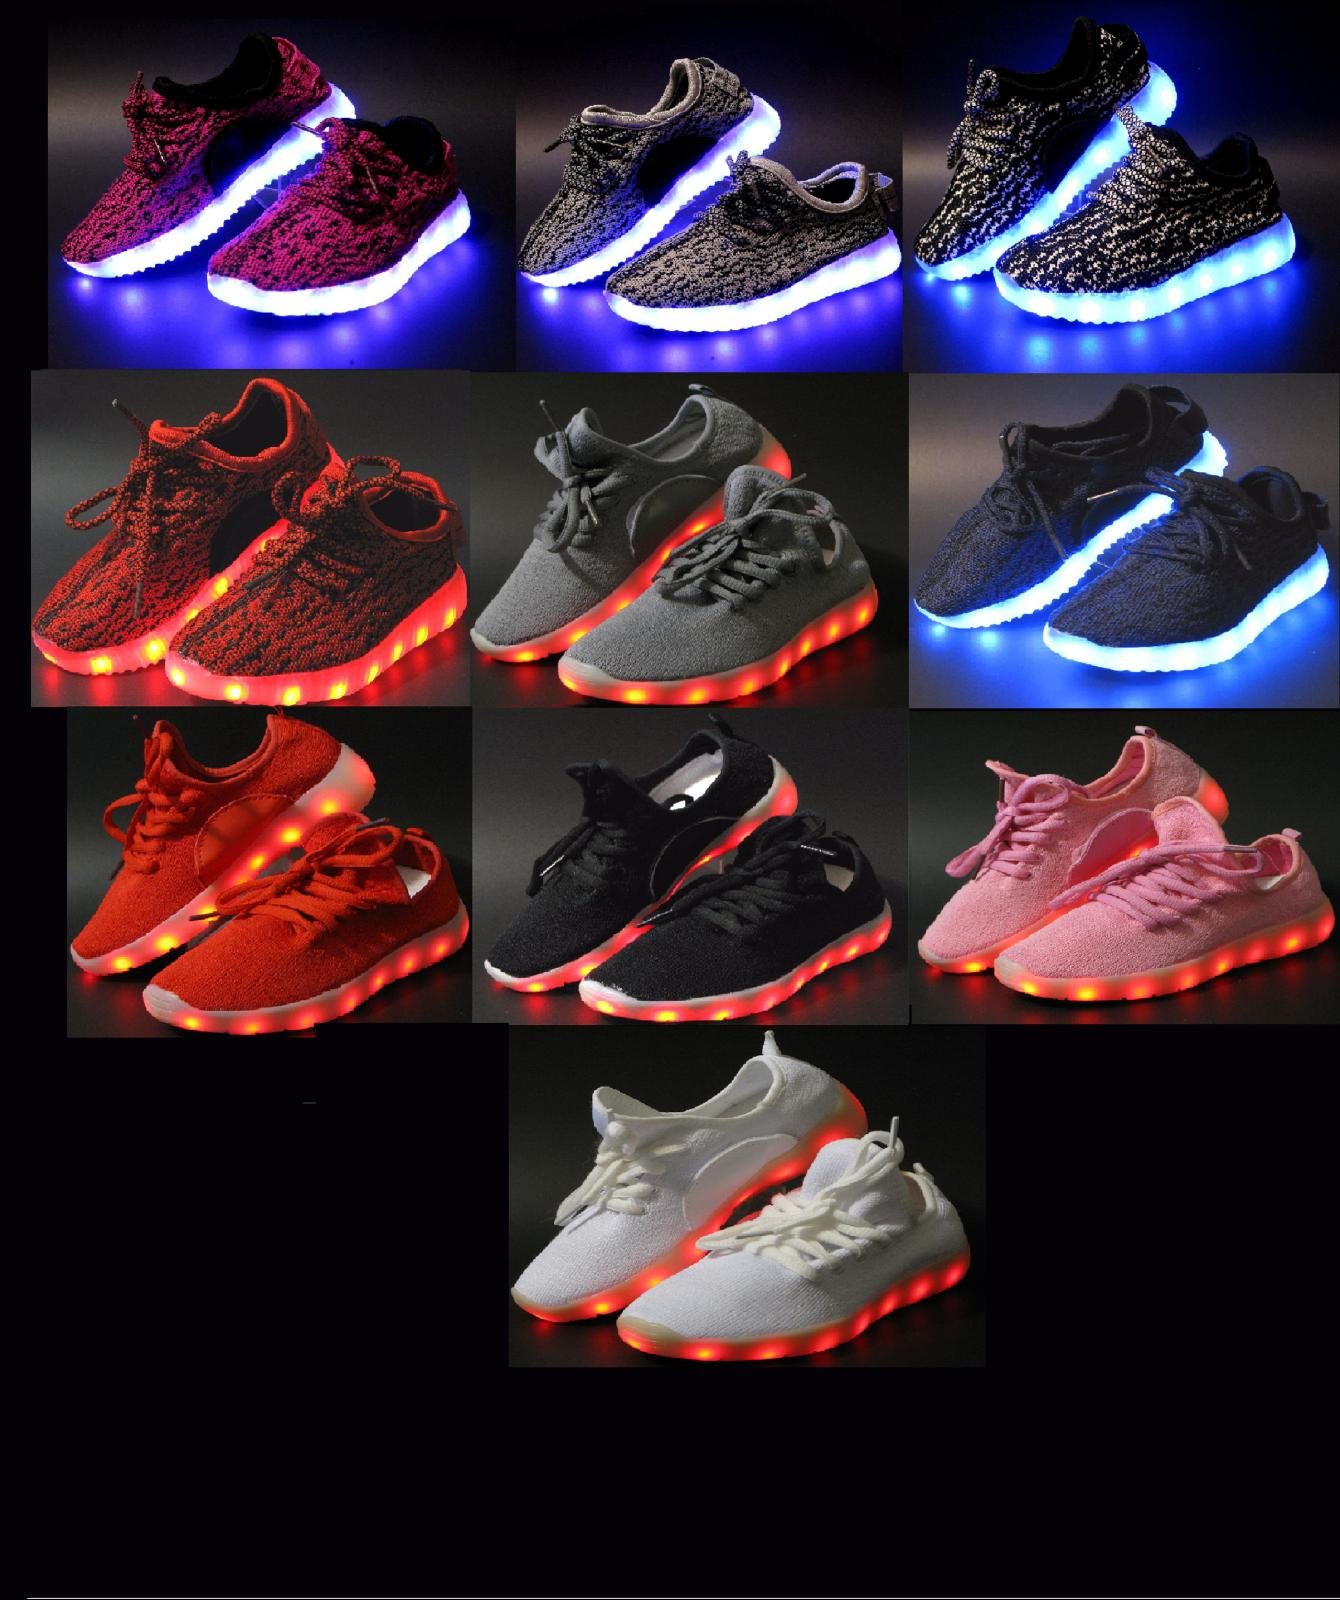 Unisex Shoes And Sneakers